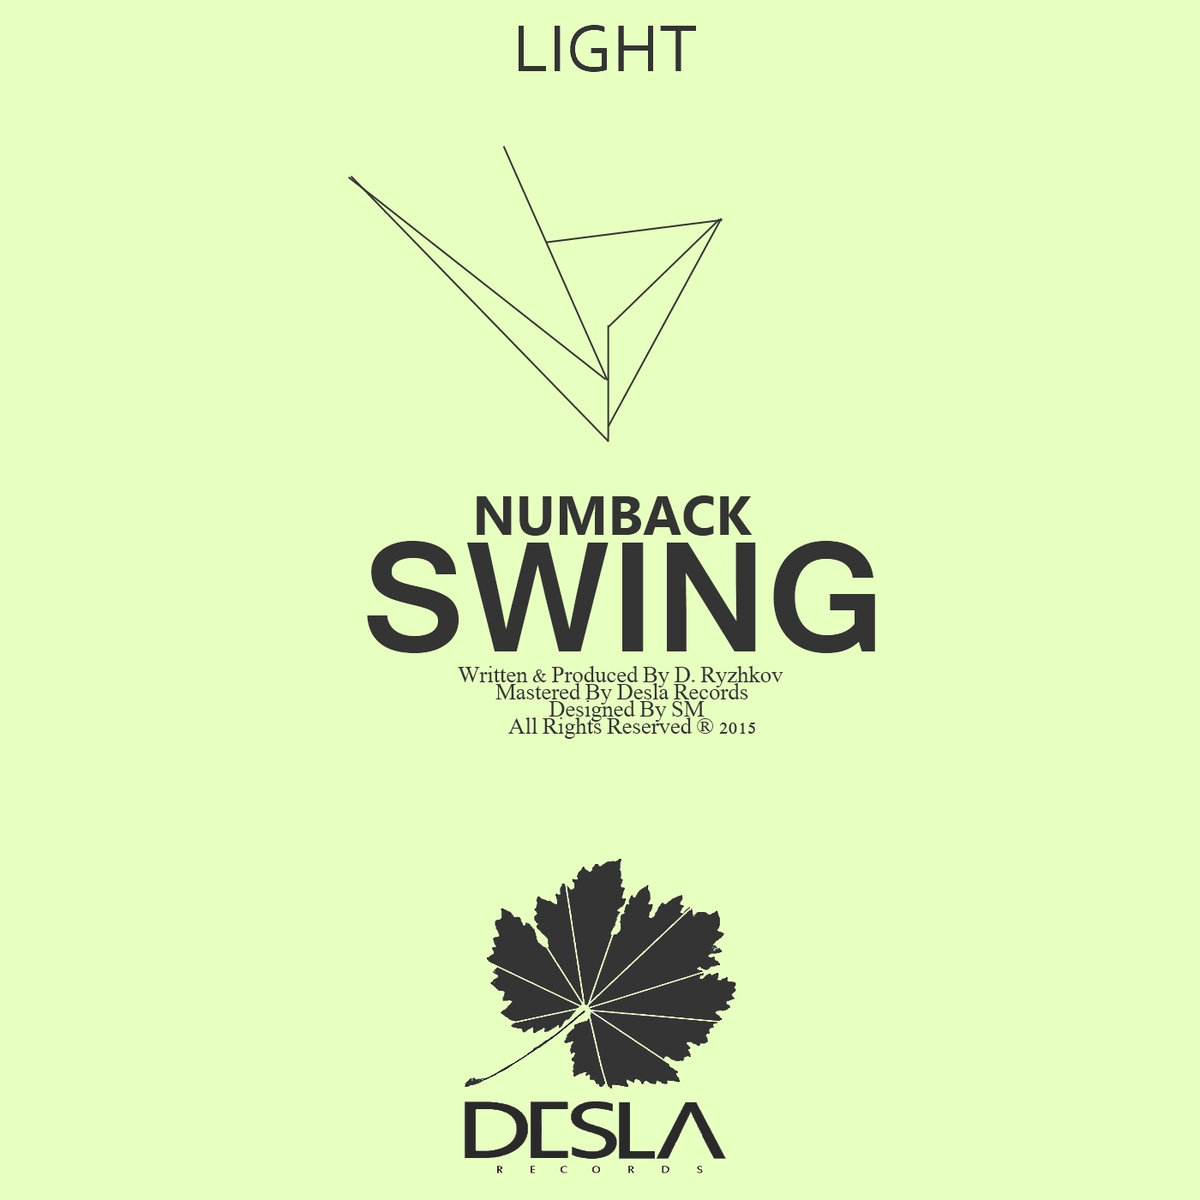 10. Numback - Swing